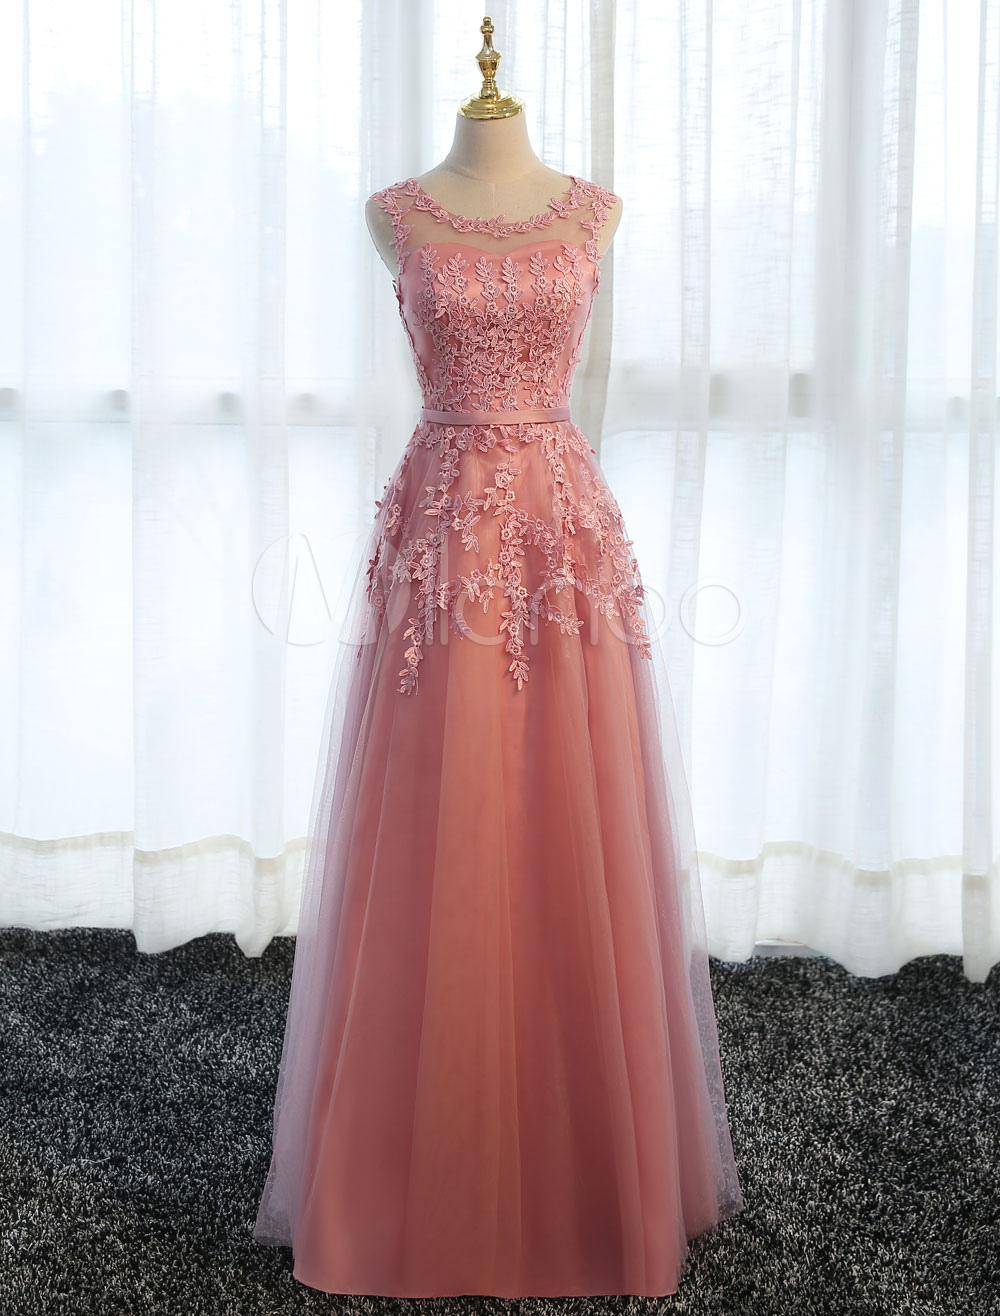 Buy Long Prom Dresses Lace Cameo Pink Party Dress A Line Applique Tulle Maxi Formal Dress for $83.99 in Milanoo store